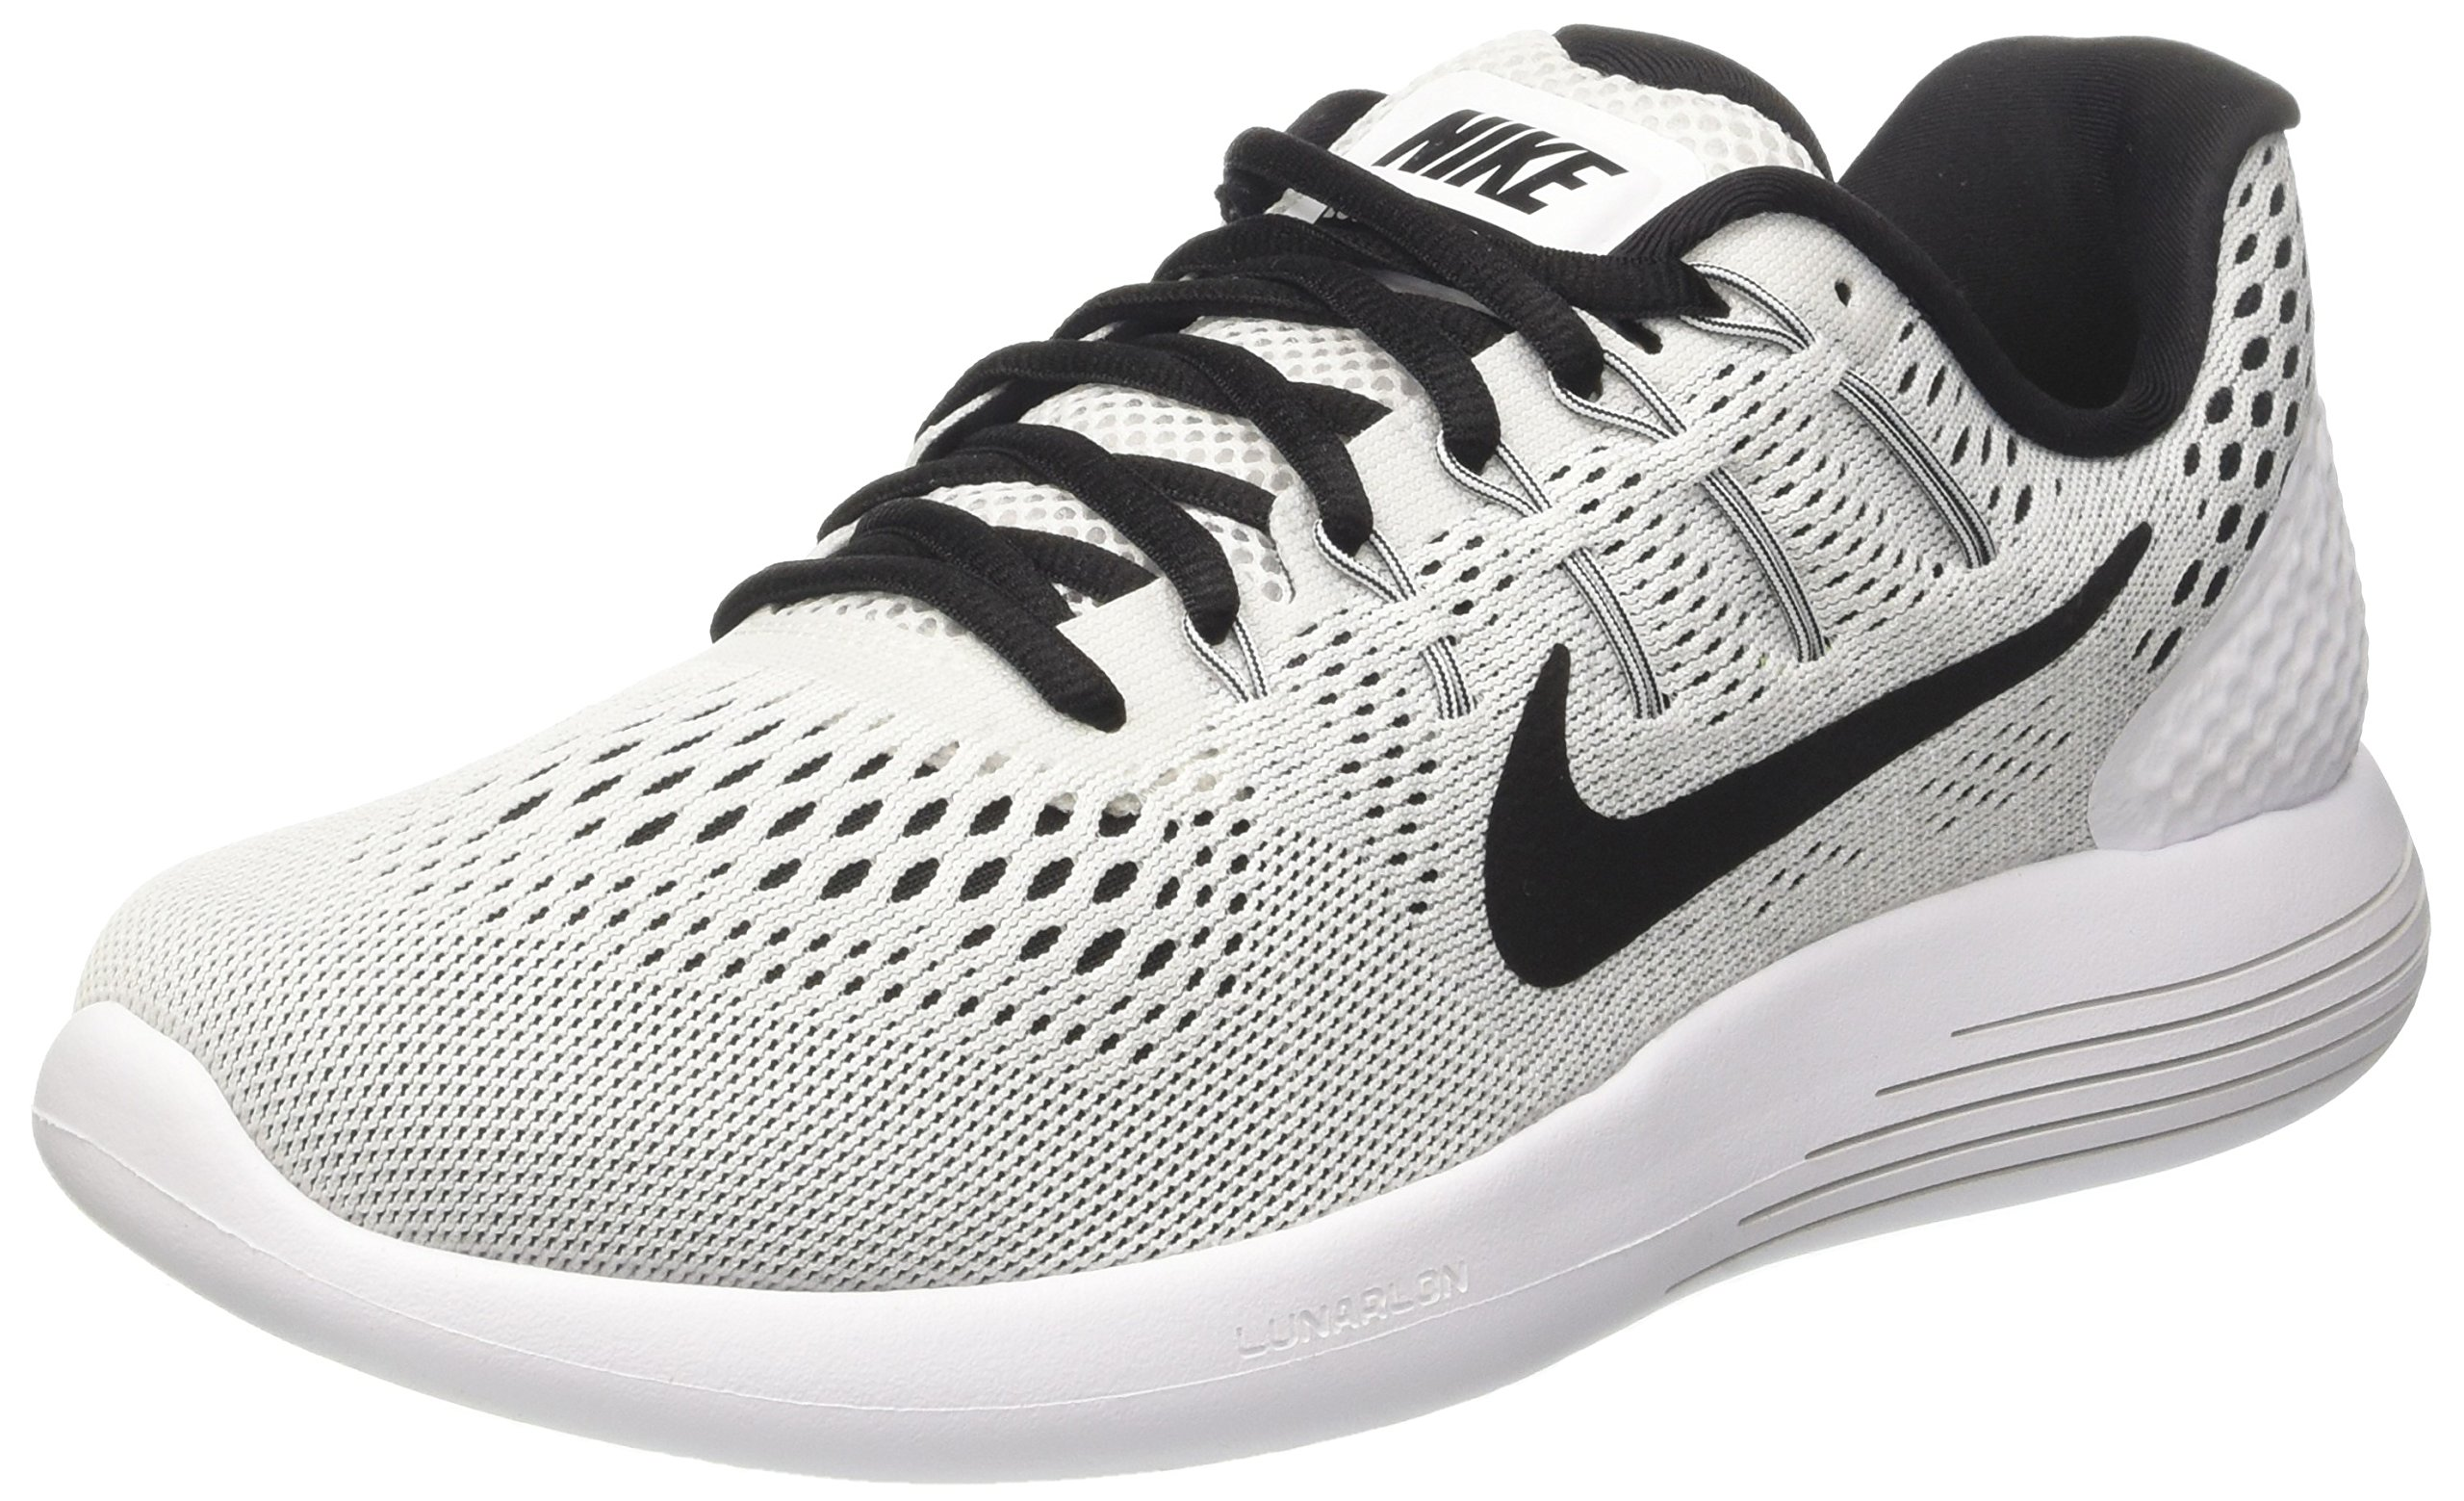 Nike Mens Lunarglide 8 White/Black Running Shoe Size 8